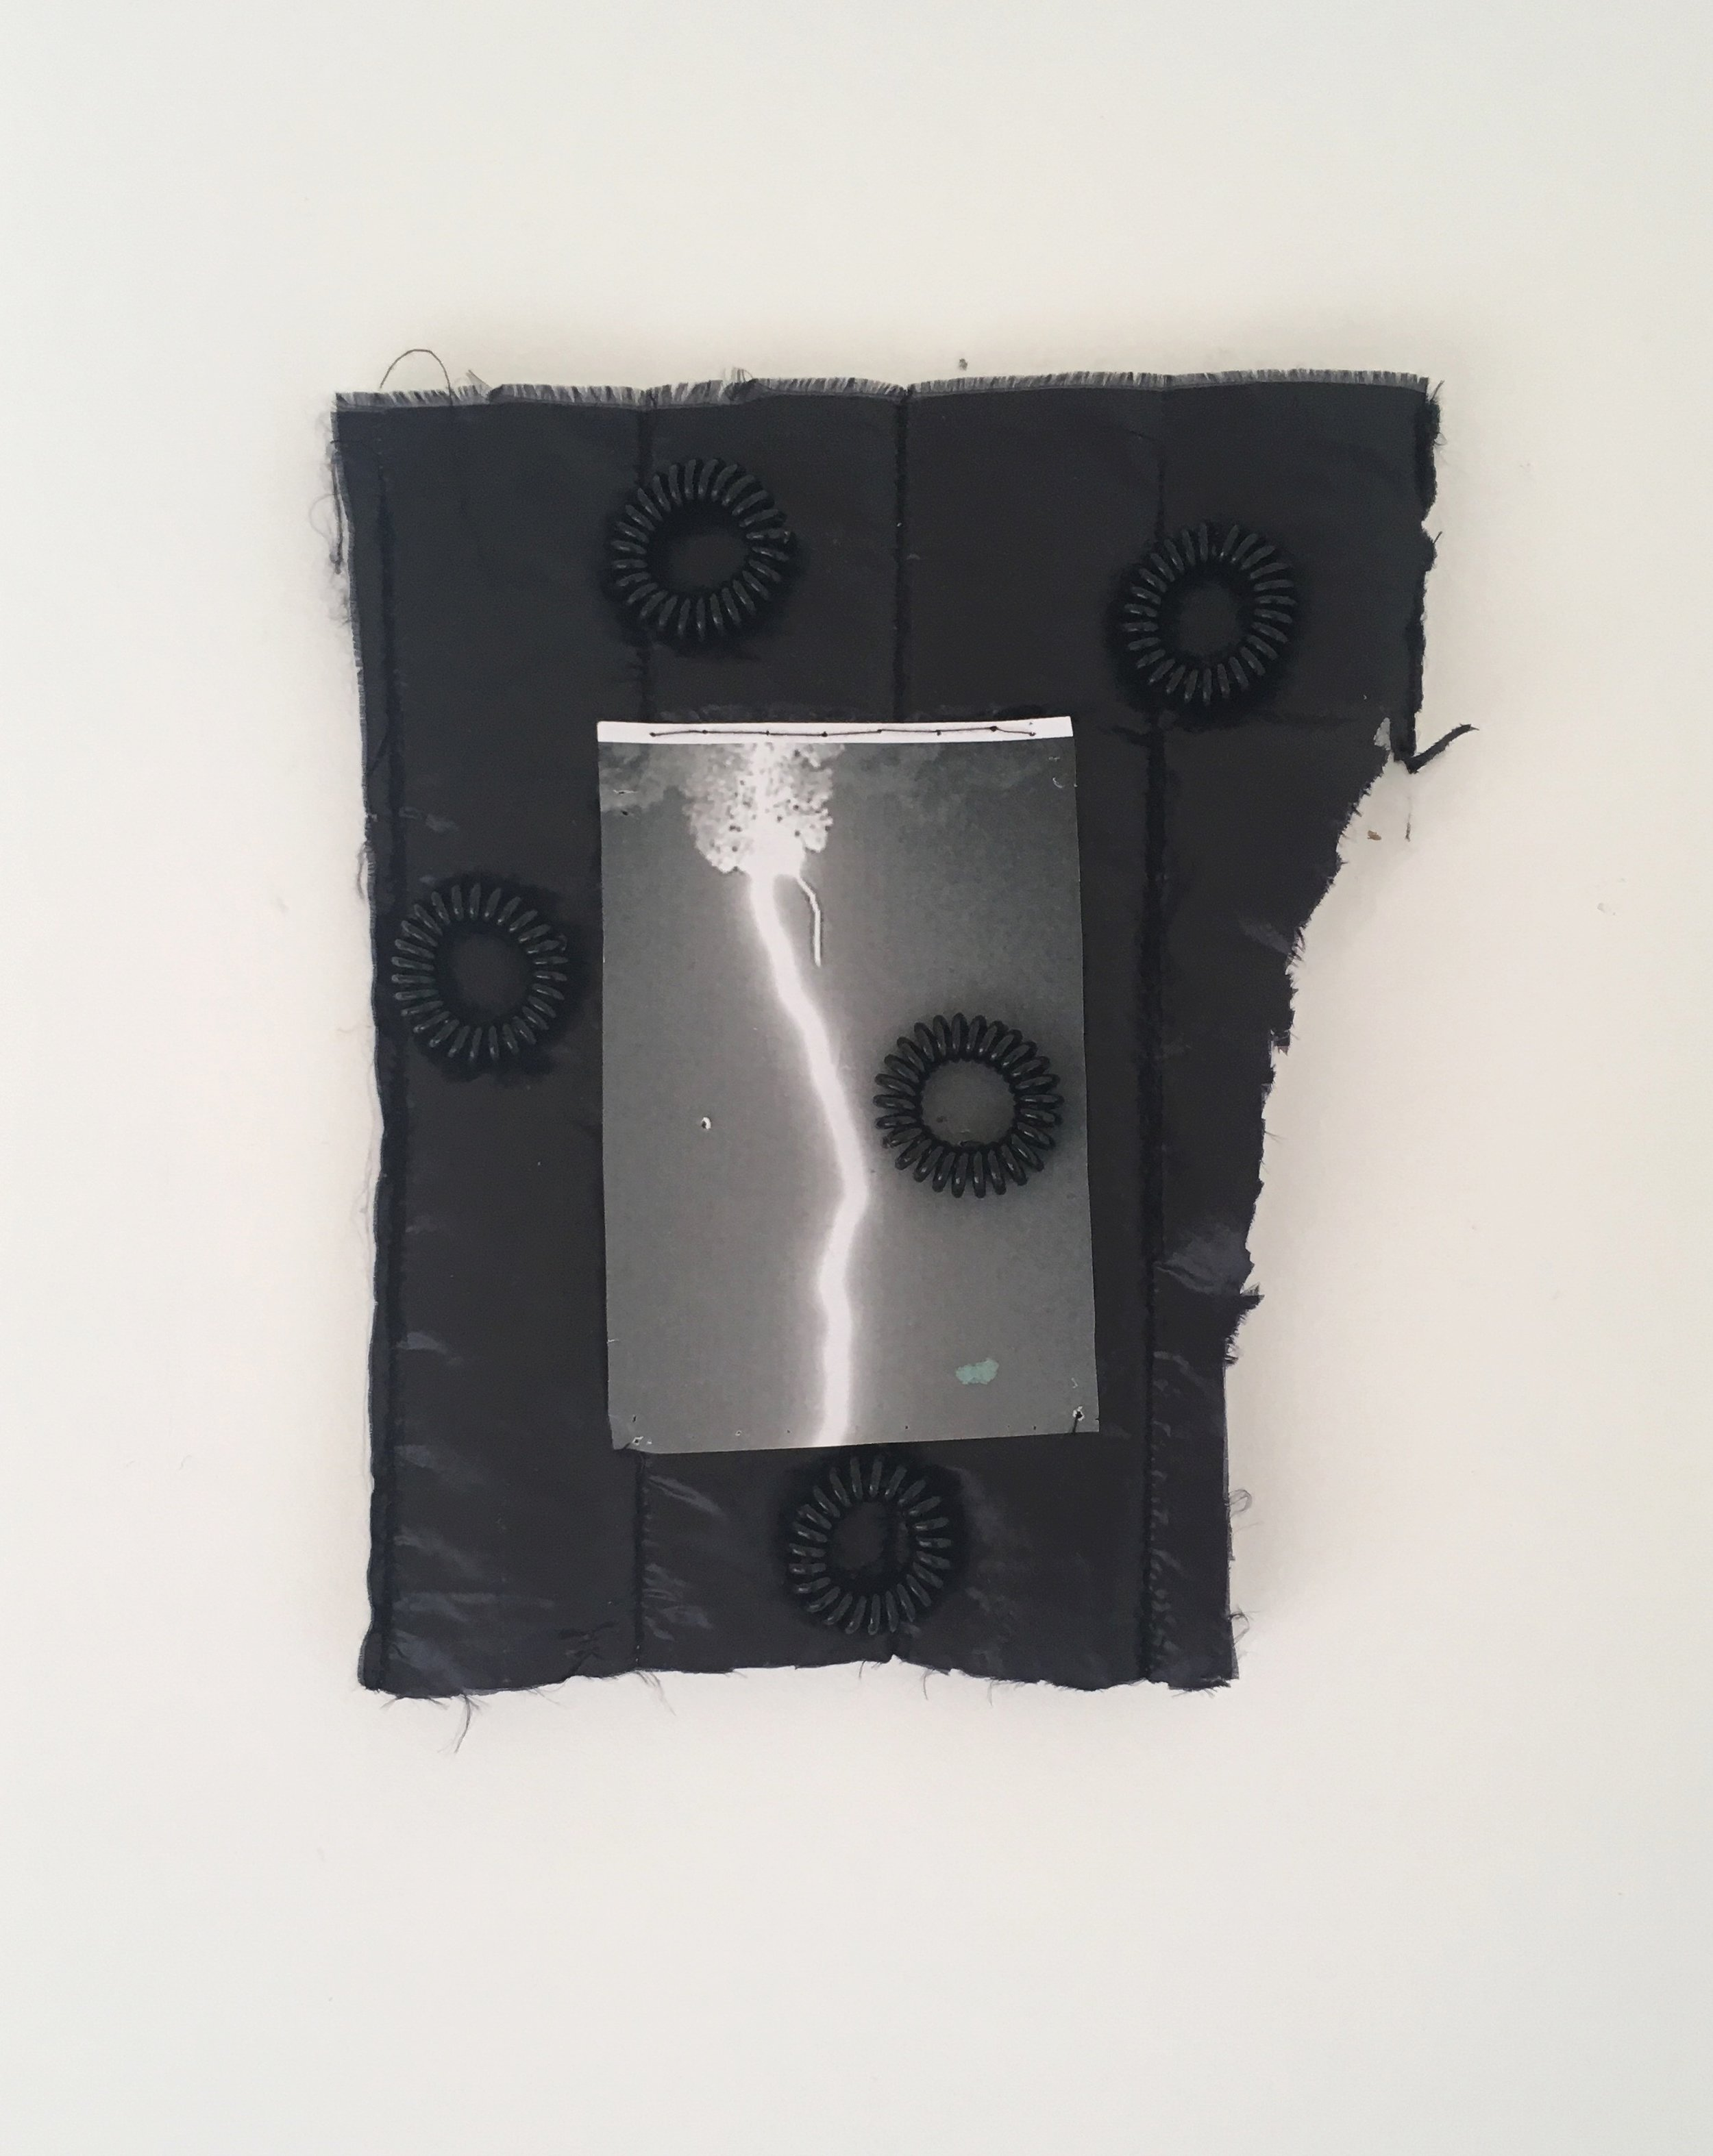 Untitled,  2019, paper fabric fragment with coils